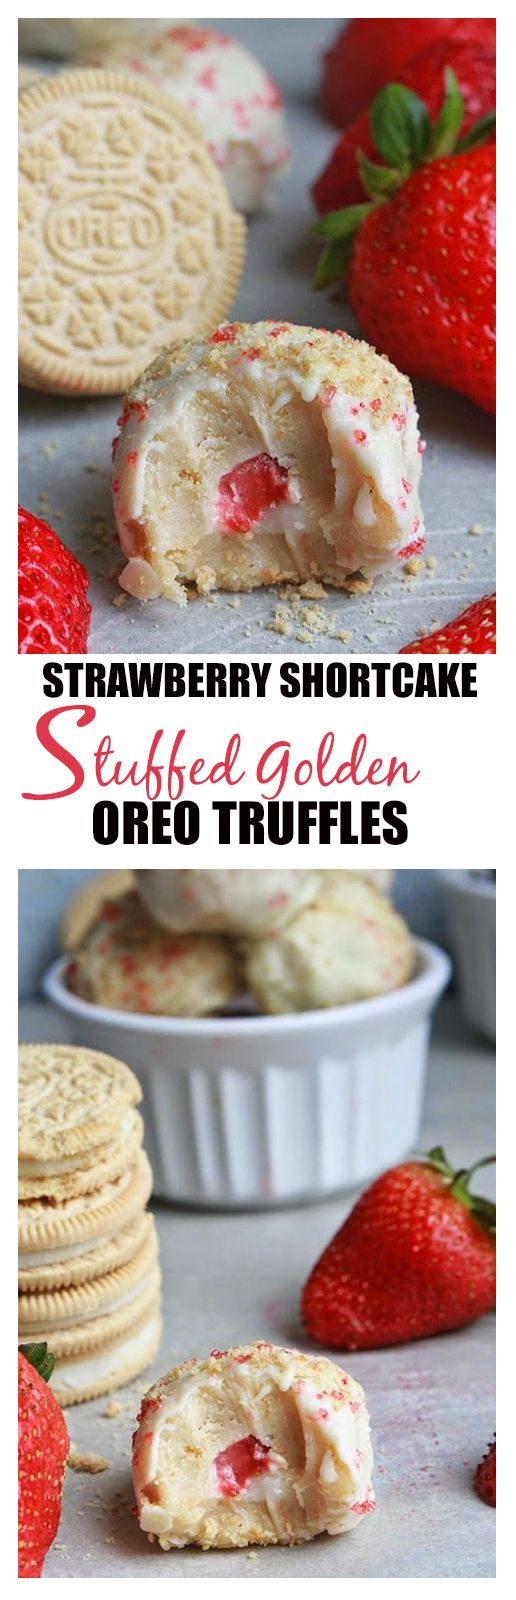 Strawberry Shortcake Stuffed Golden Oreo Truffles